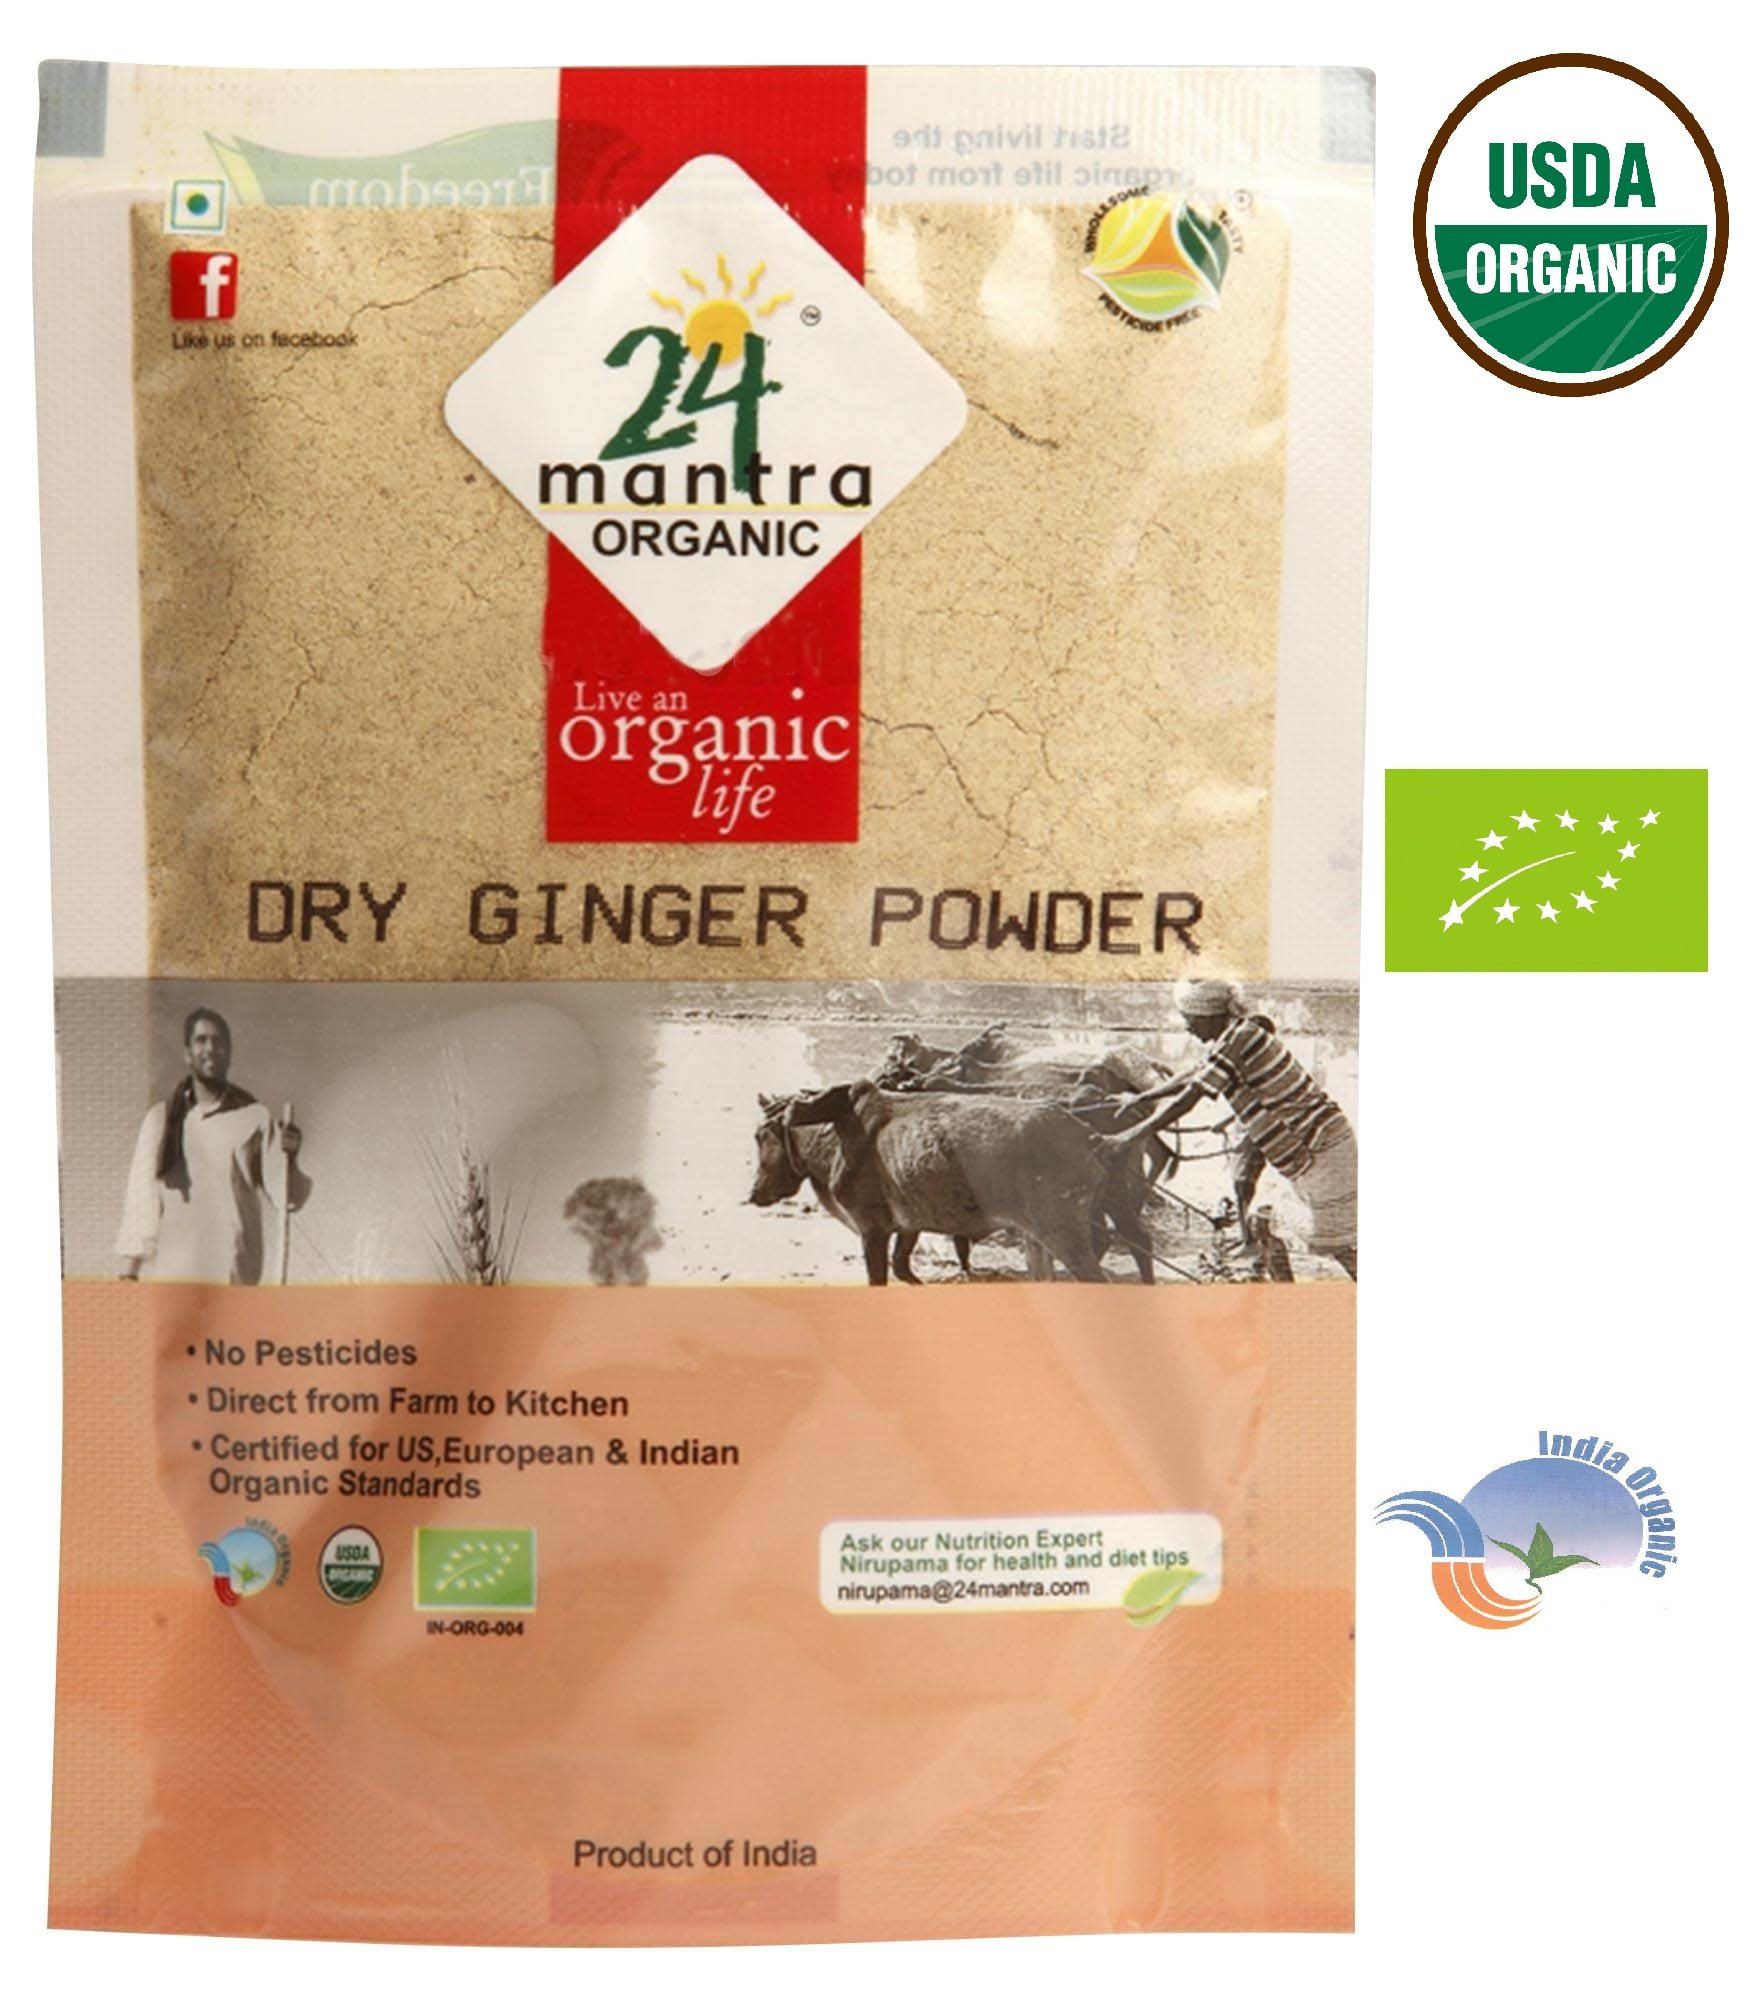 Organic Flax Seeds - USDA Certified Organic - European Union Certified Organic - Pesticides Free - Adulteration Free - Sodium Free - Pack of 4 X 7 Ounces (28 Ounces - 1 LB 12 Ounces) - 24 Mantra Organic by 24 Mantra Organic (Image #7)